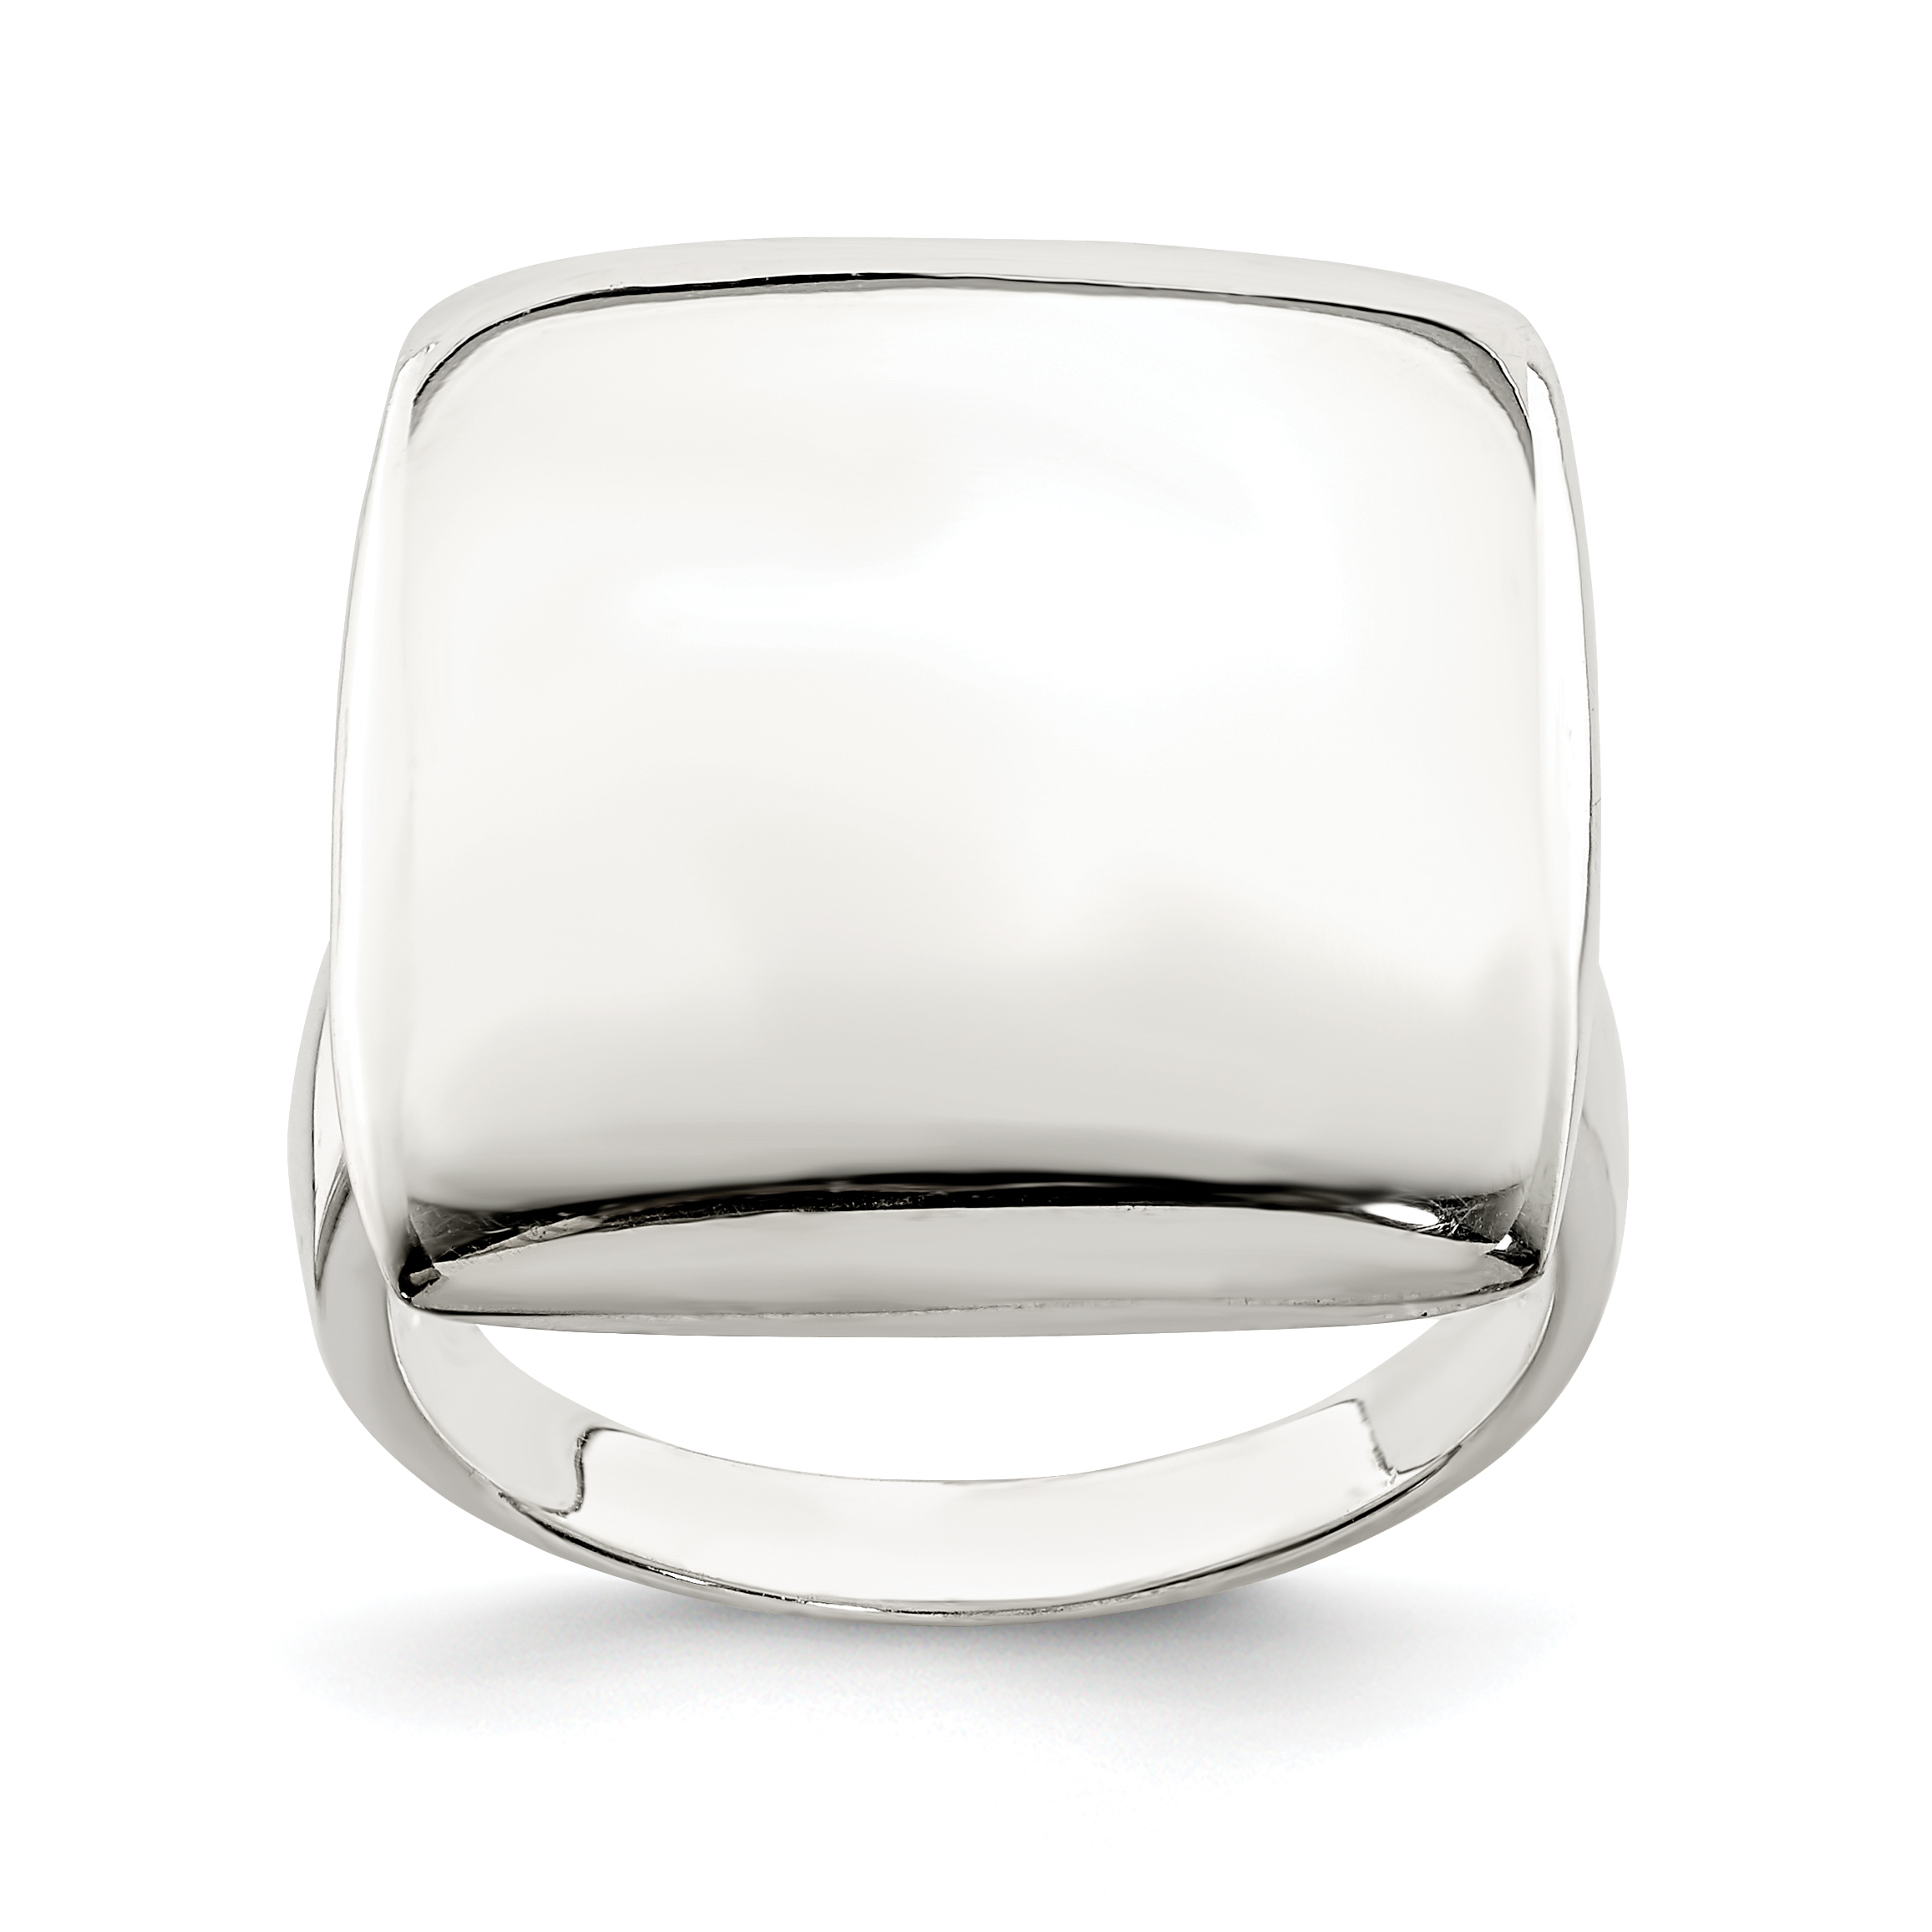 925 Sterling Silver Solid Band Ring Size 8.00 Fine Jewelry Gifts For Women For Her - image 2 de 2